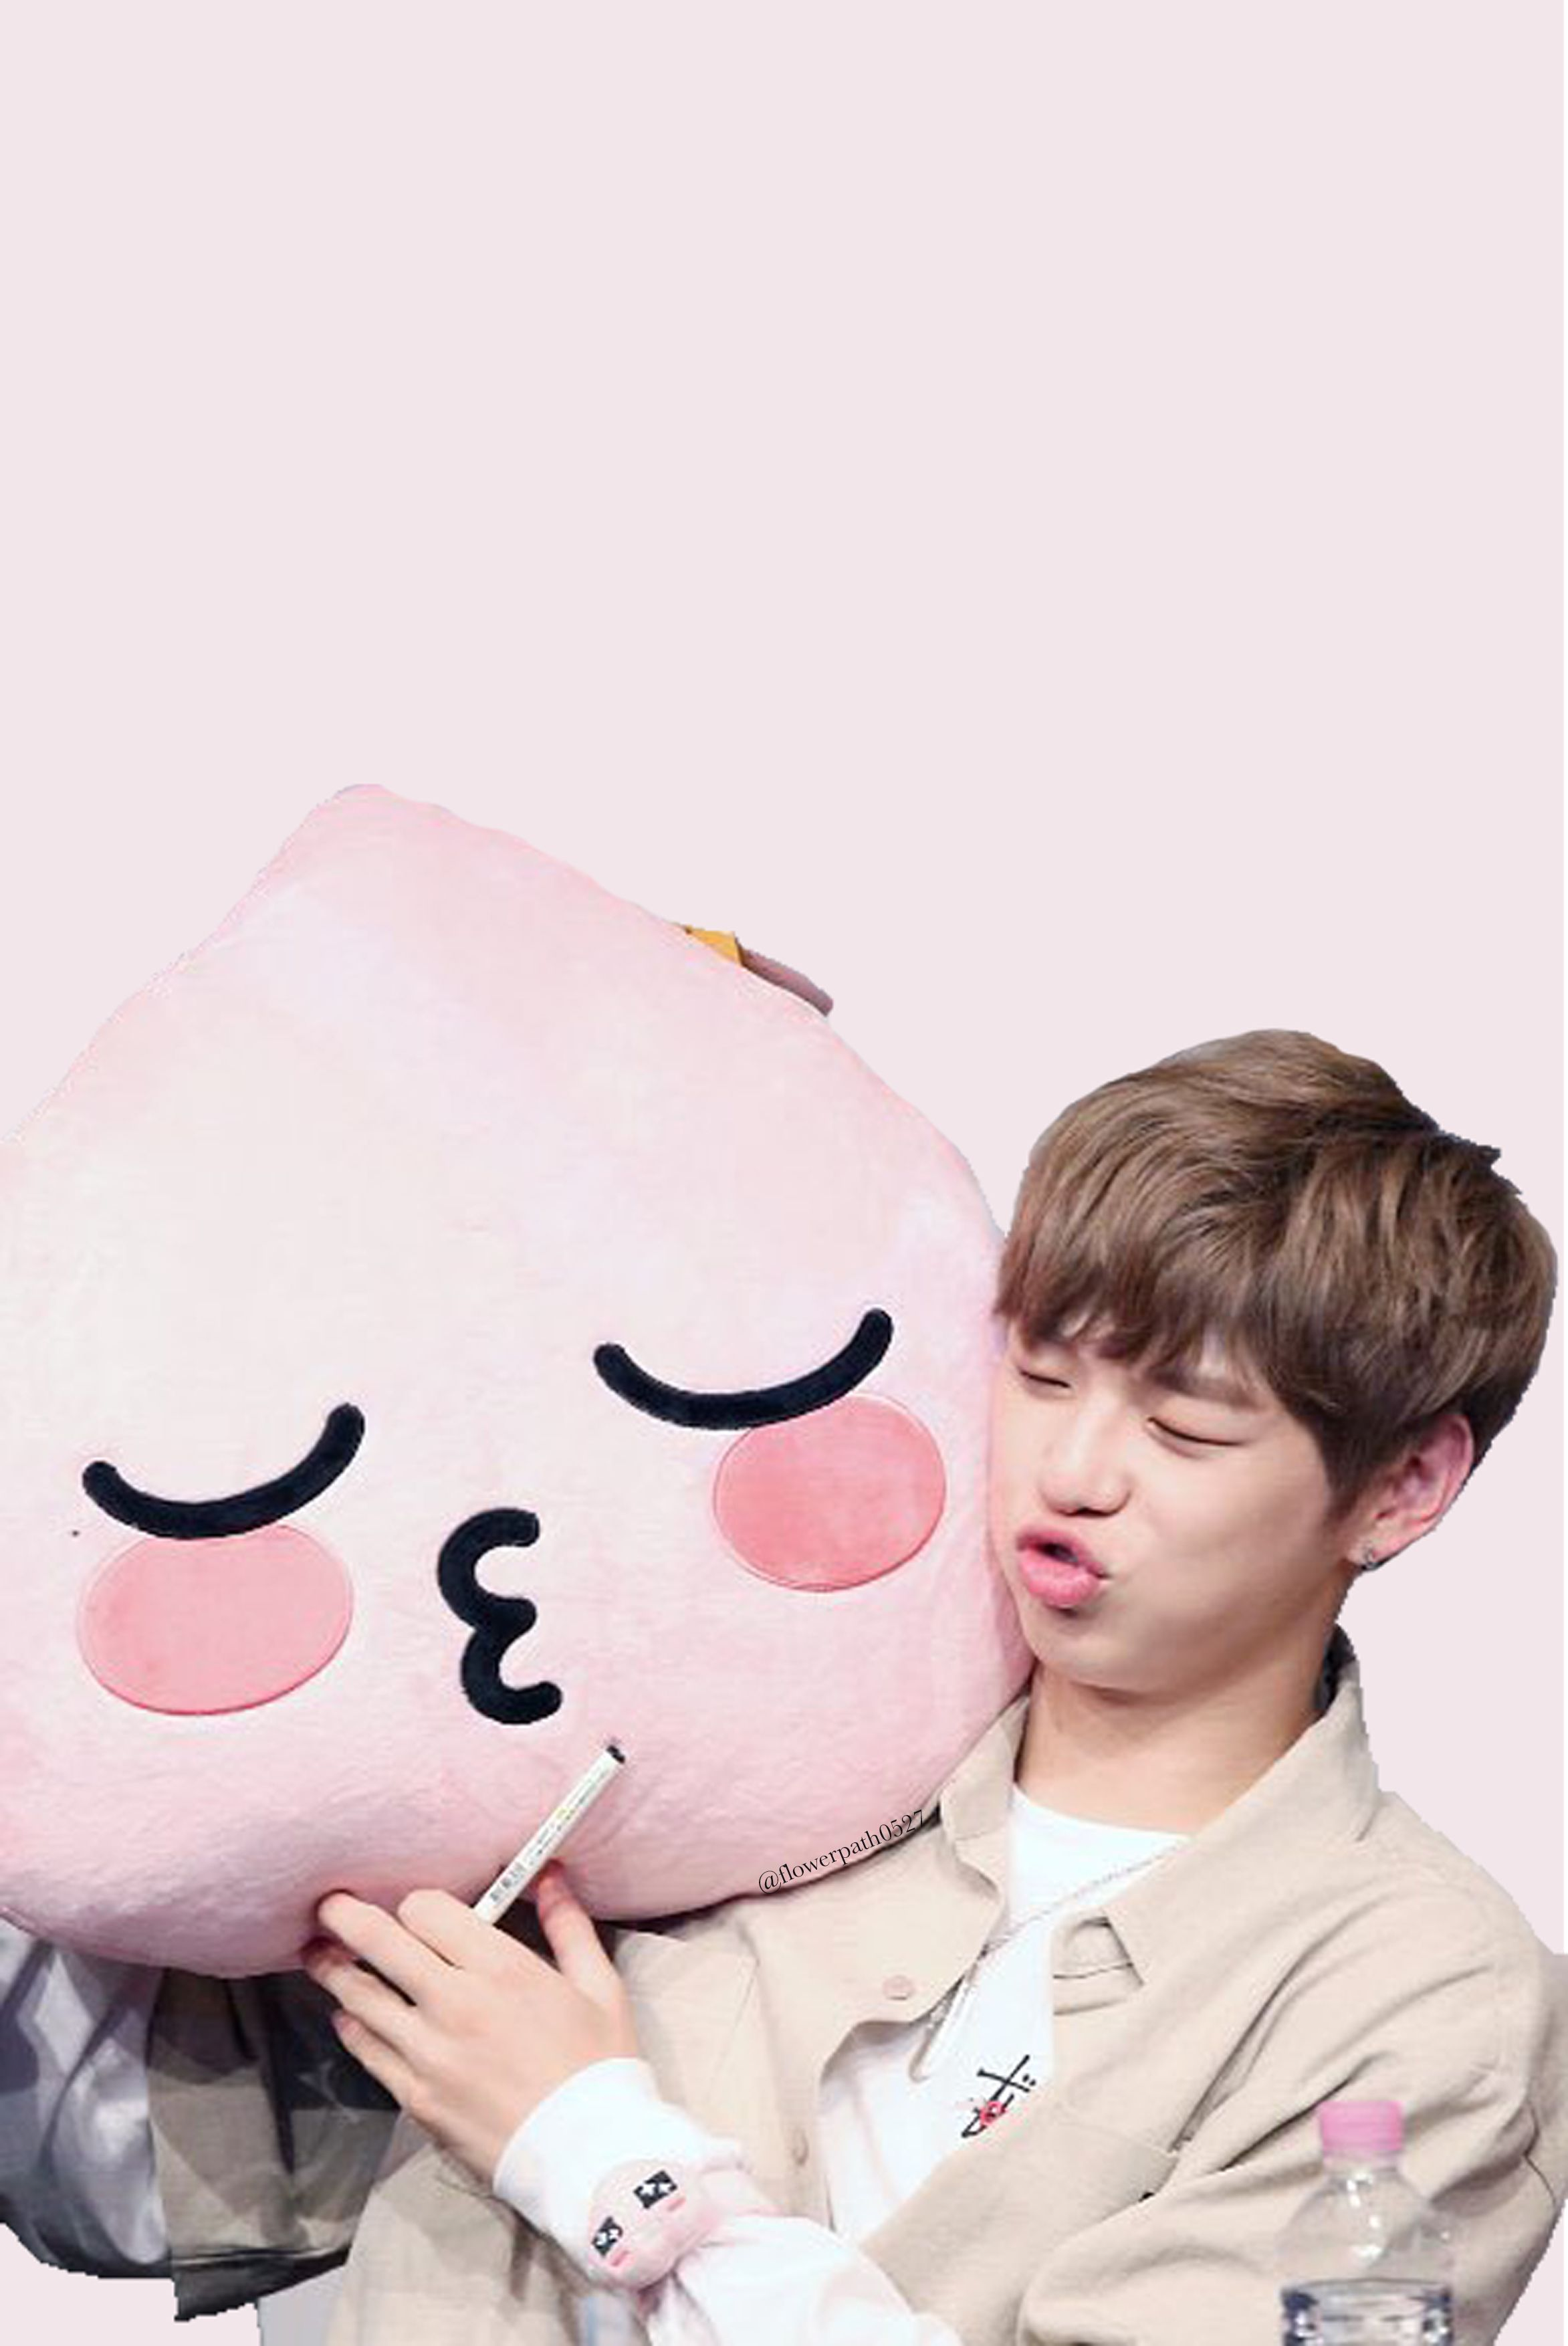 Wanna One Kang Daniel Wallpaper Kang Daniel ダニエル